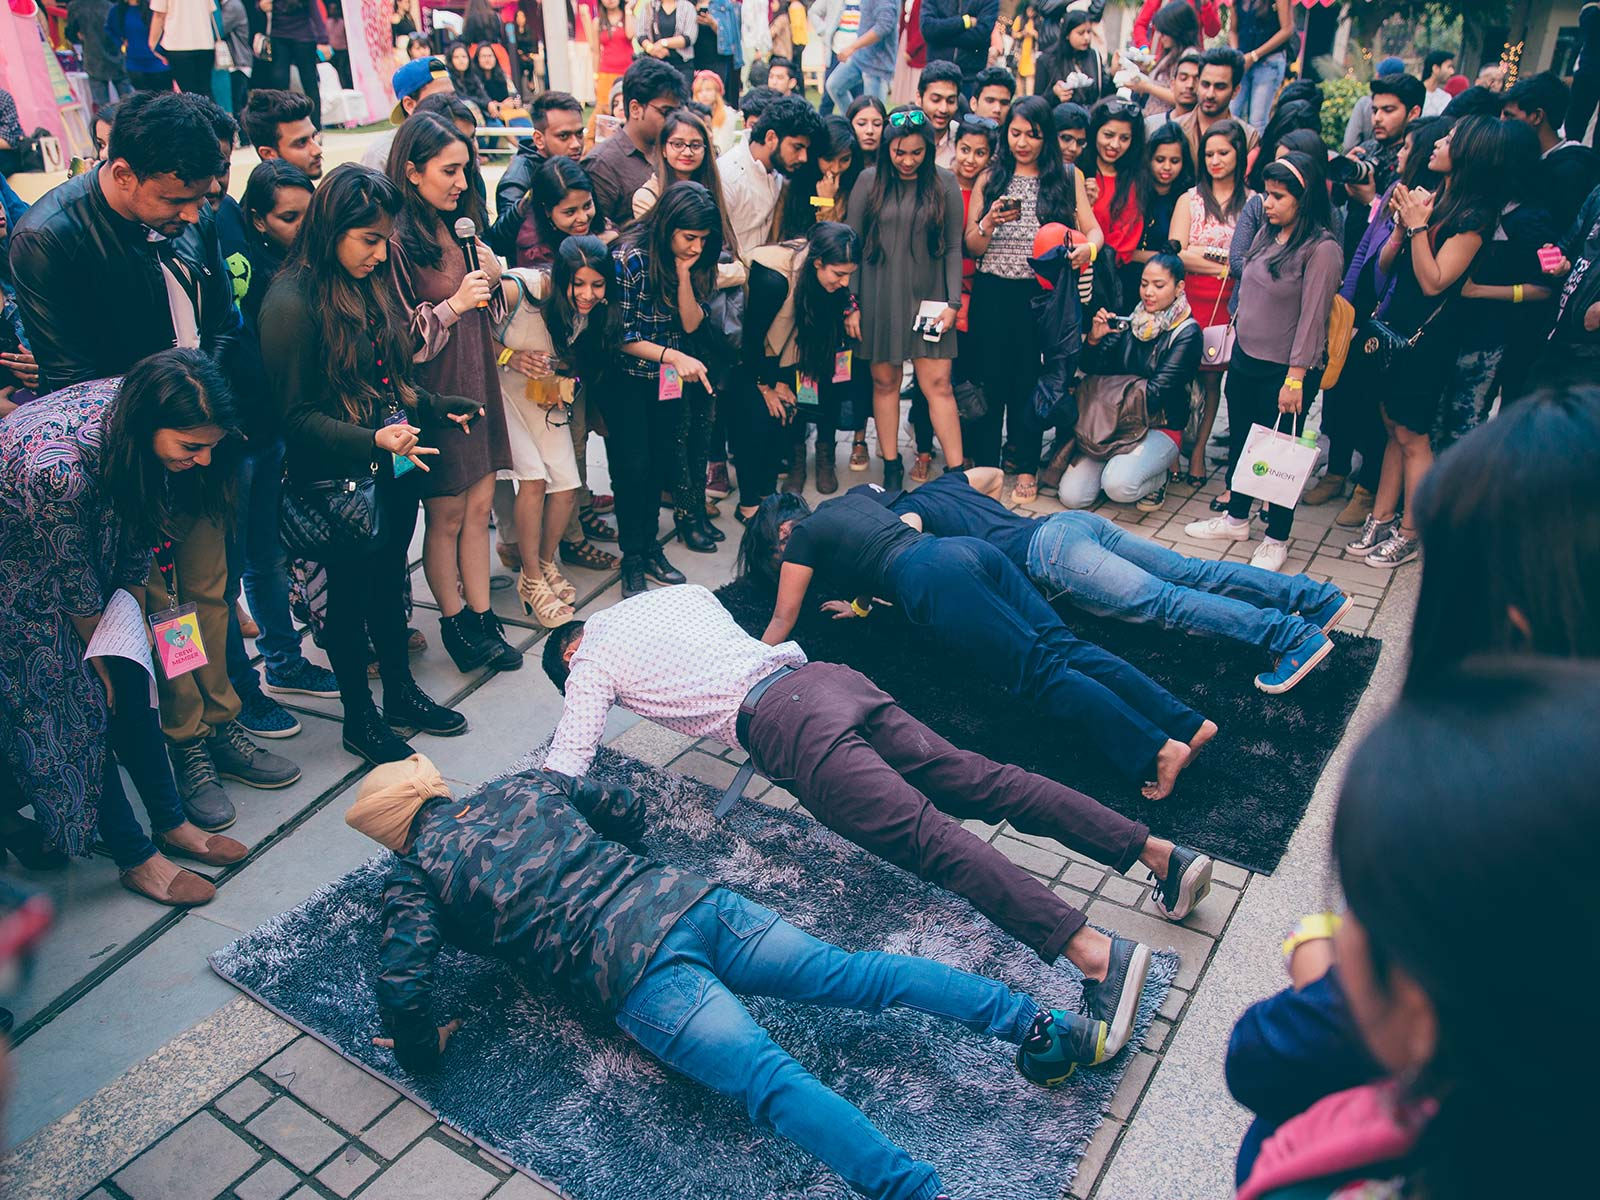 Boys participate in the Plank task at the POPxo Love Fest while their friends cheer them on